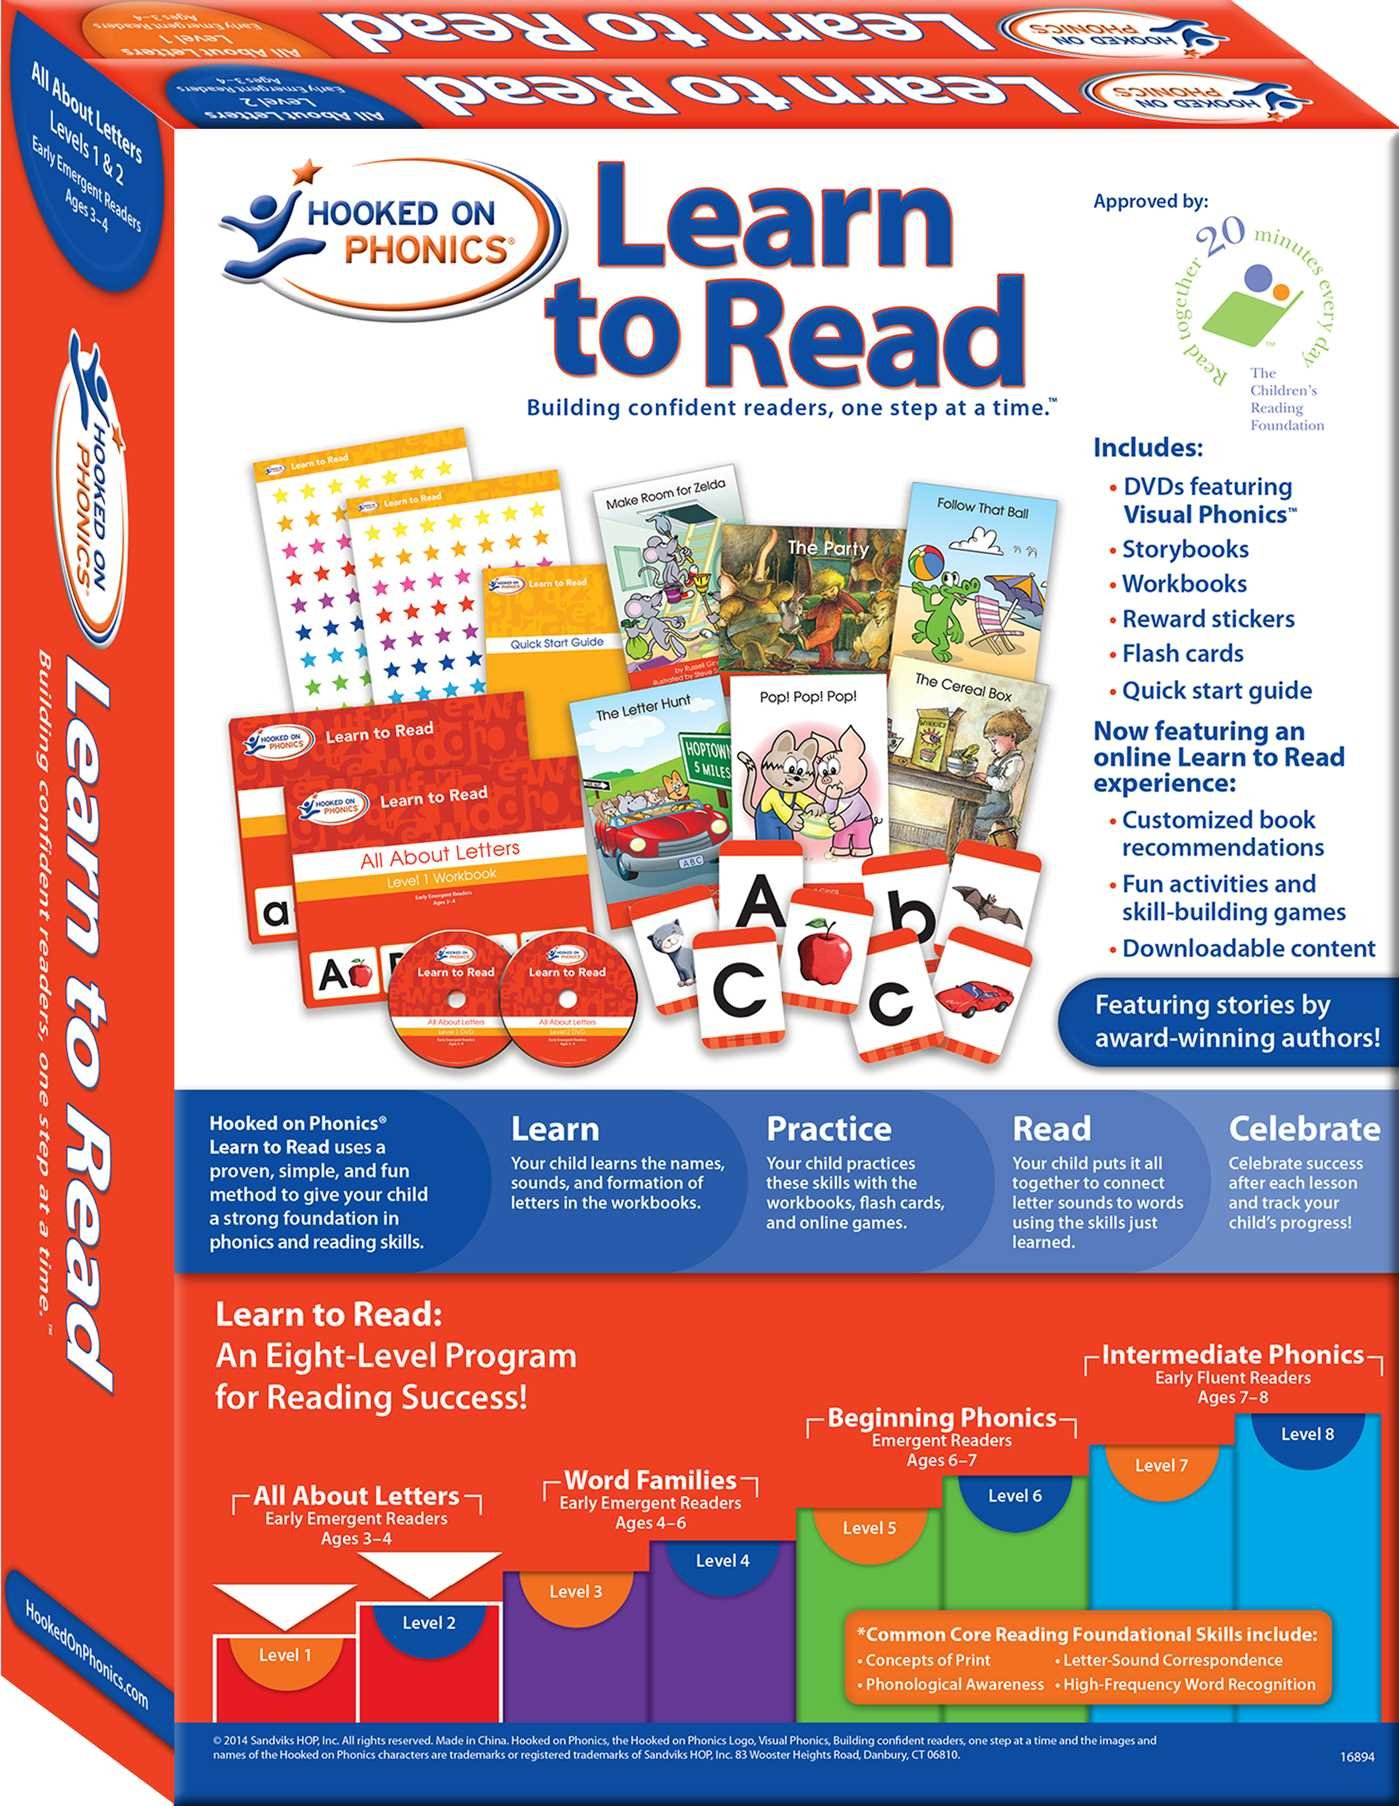 Hooked on phonics learn to read levels 12 complete all about hooked on phonics learn to read levels 12 complete all about letters early emergent readers pre k ages 3 4 hooked on phonics aljukfo Images